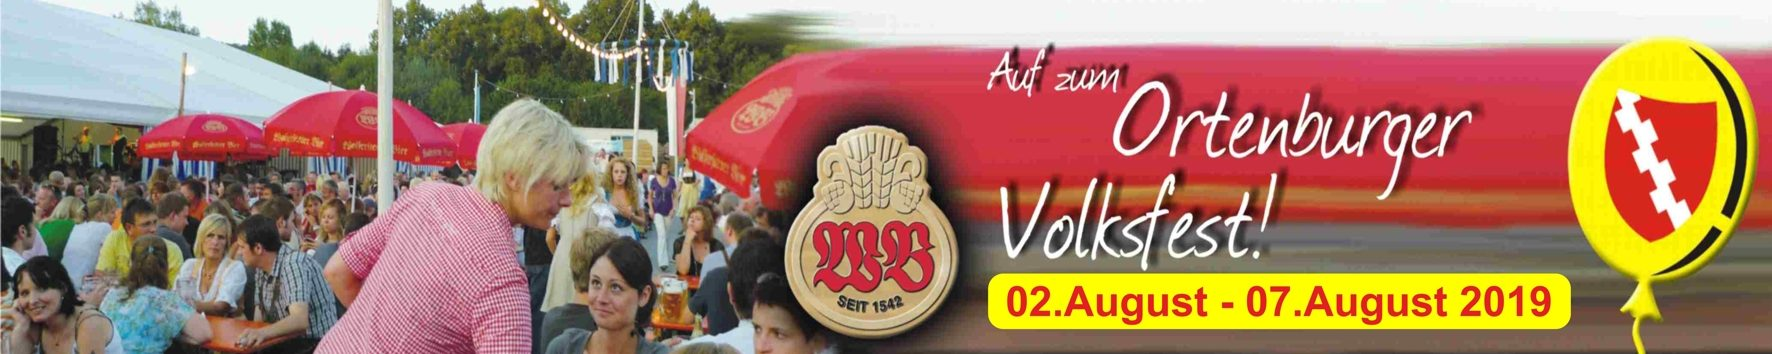 Ortenburger Volksfest